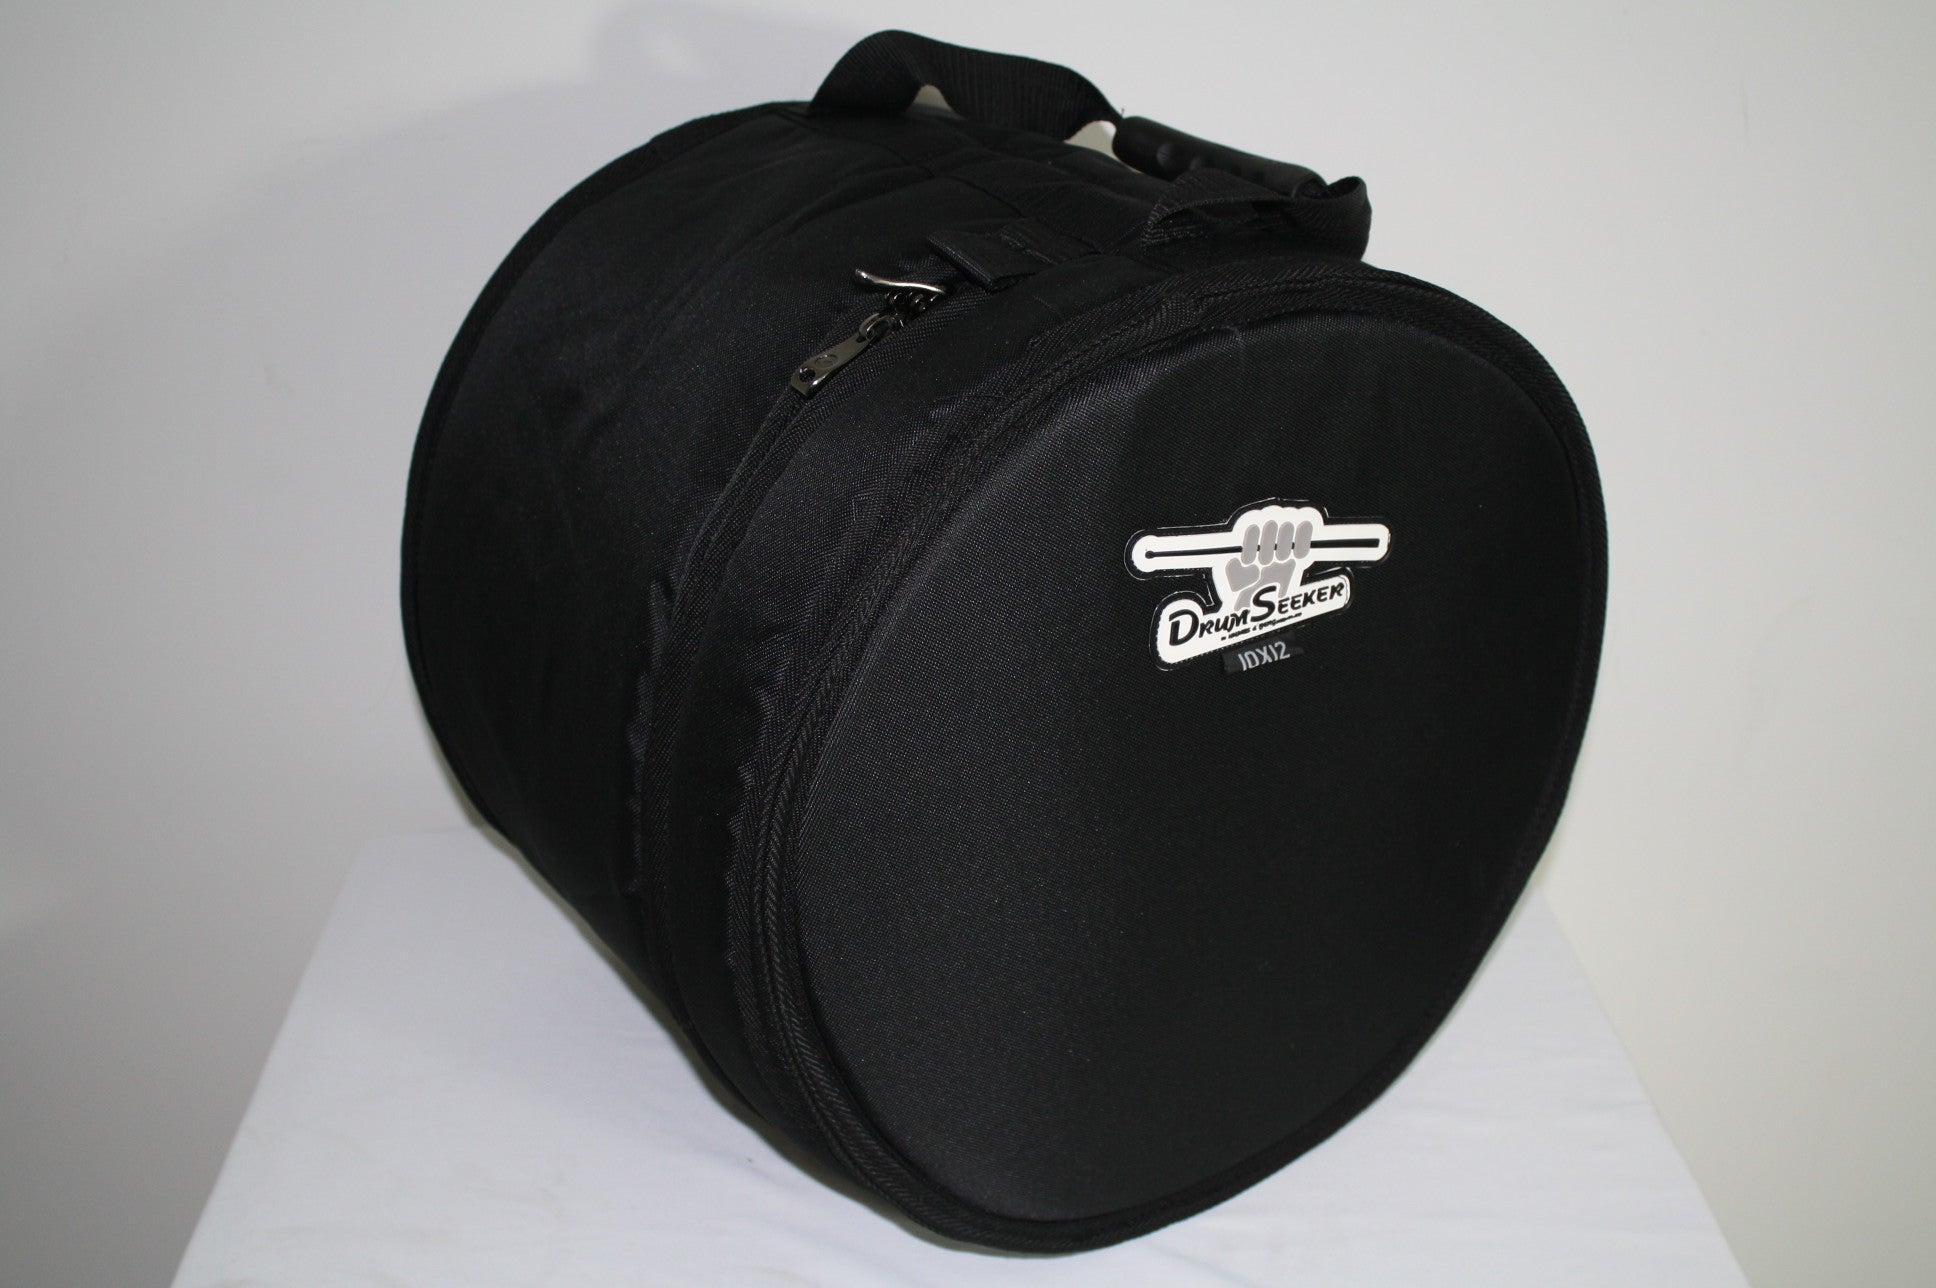 H&B  Drum Seeker 12 x 12 Inches Tom Drum Bag